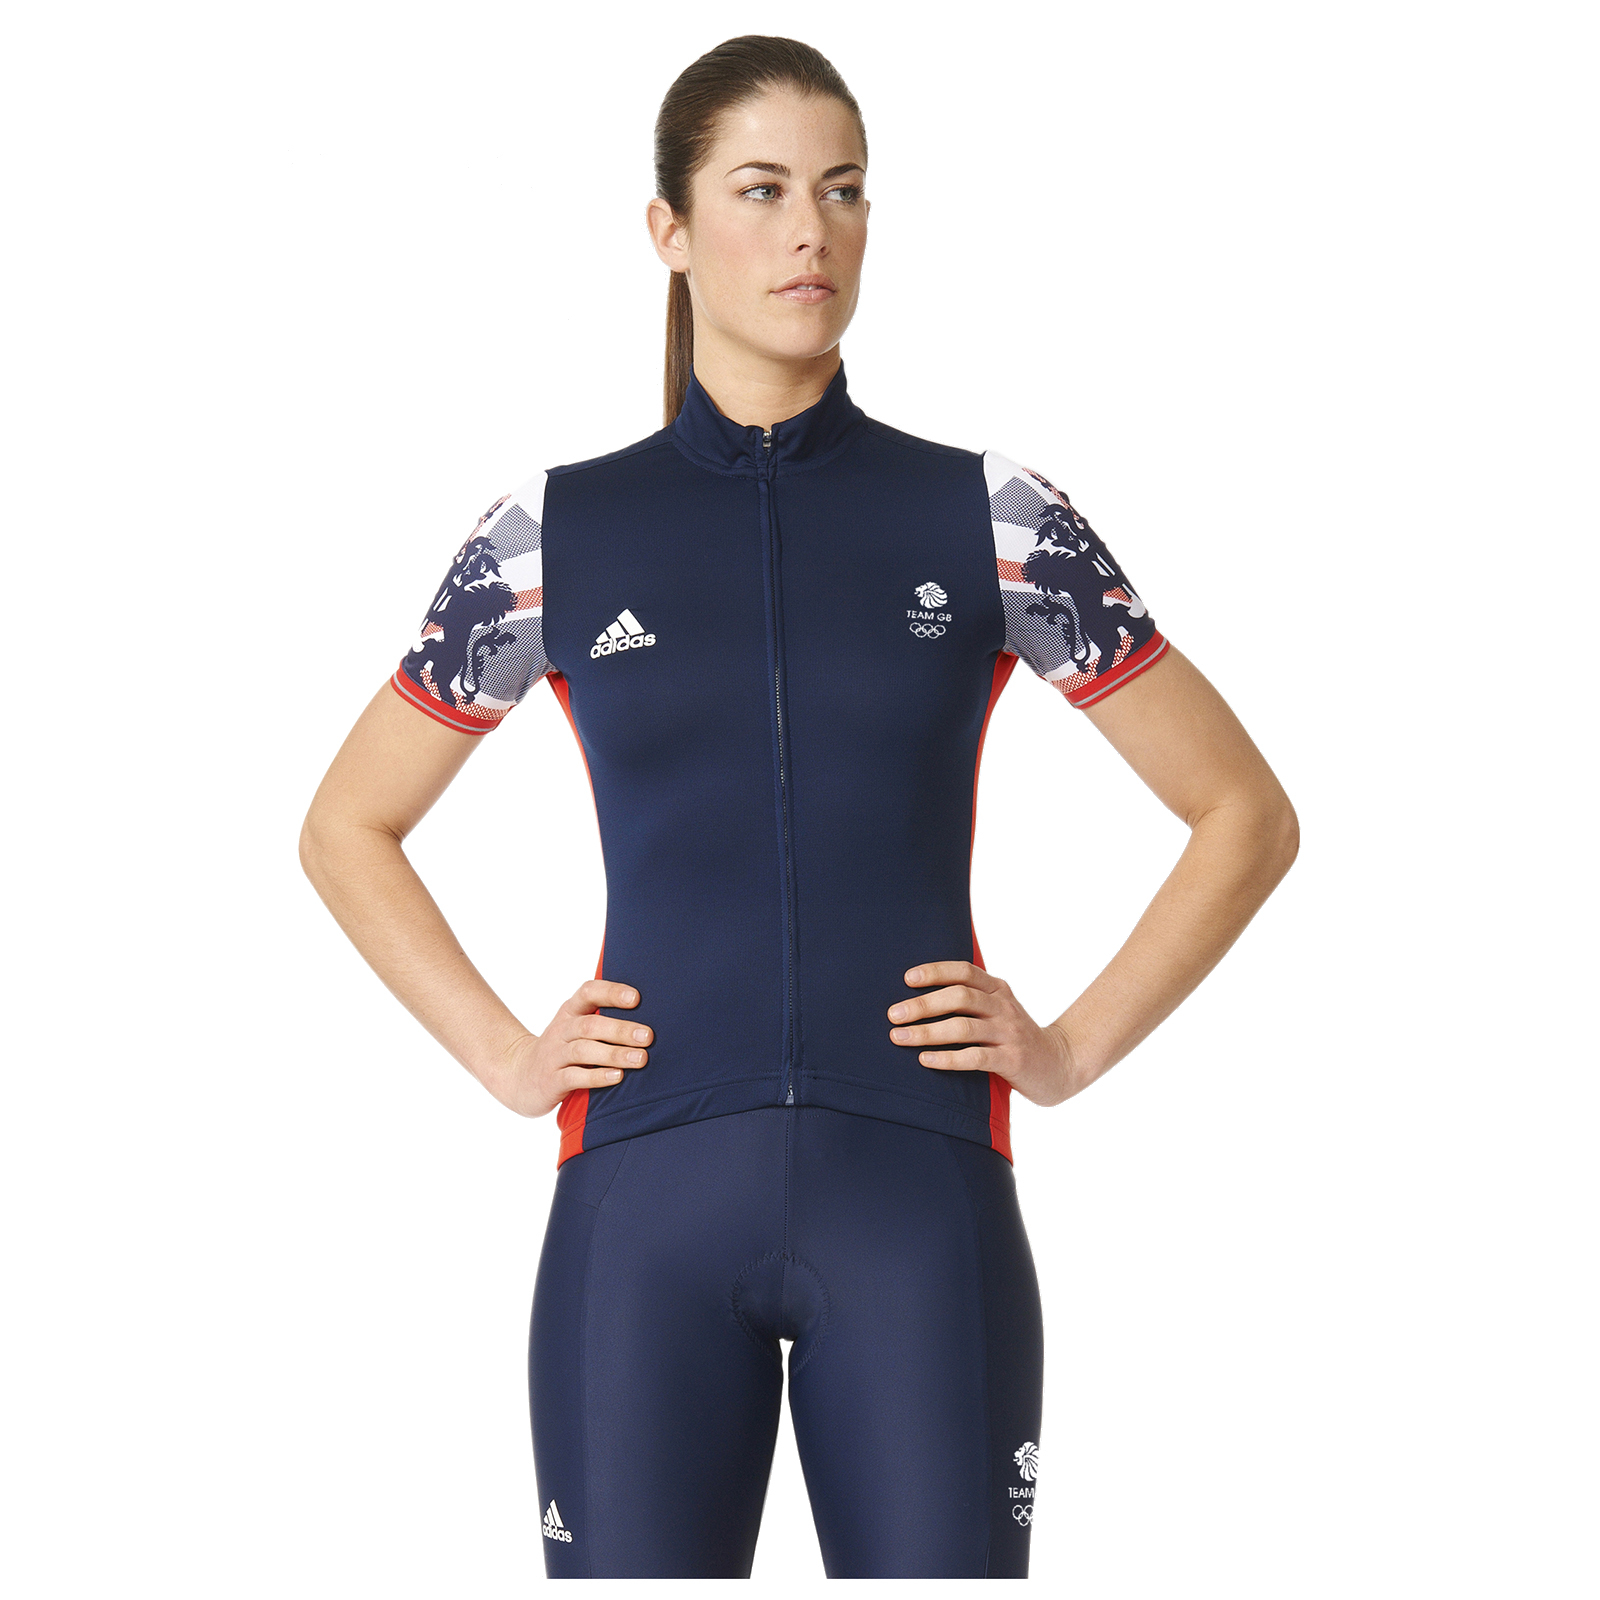 ee5a2667369 adidas Women's Team GB Replica Training Cycling Short Sleeve Jersey - Blue  | ProBikeKit.com